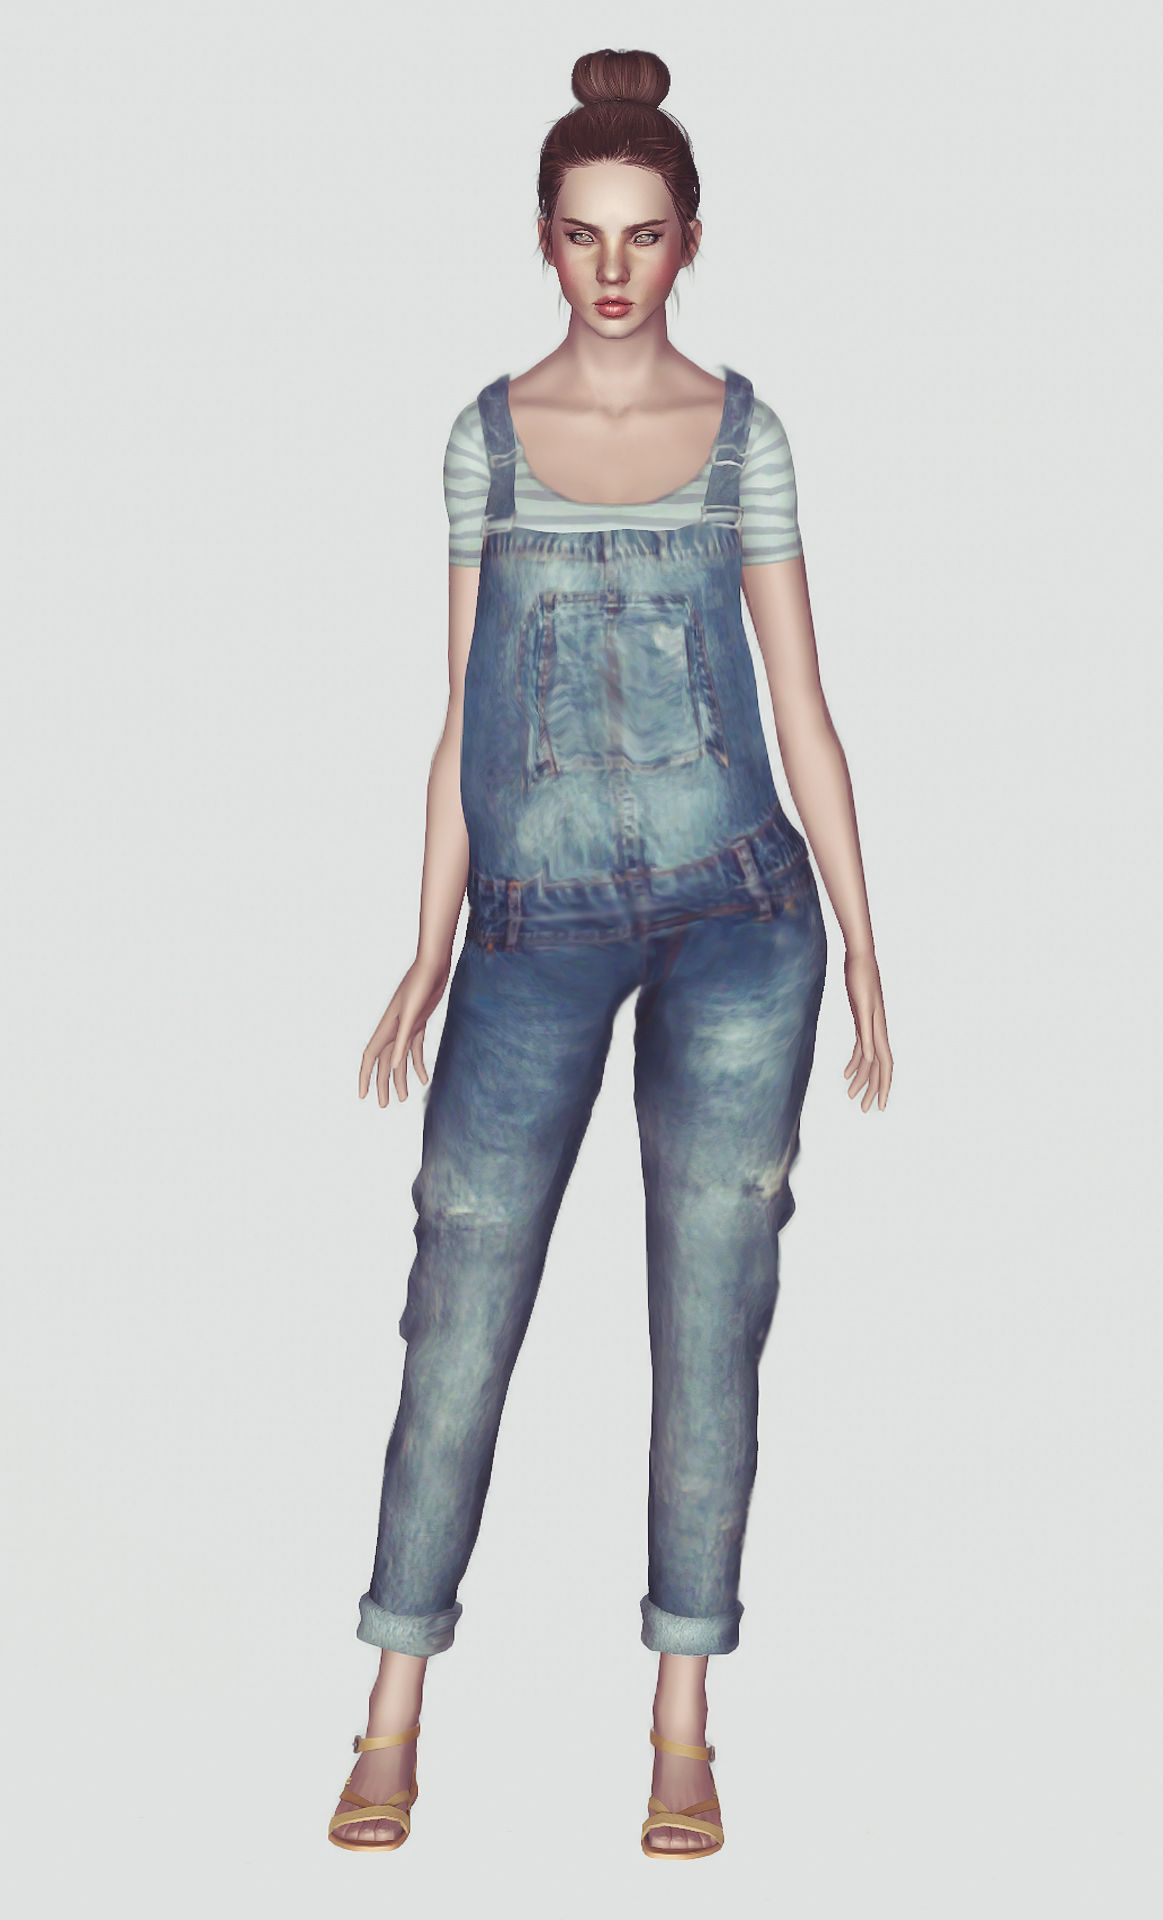 momo: Jean Overalls | The Sims 3 CC female clothes | Pinterest